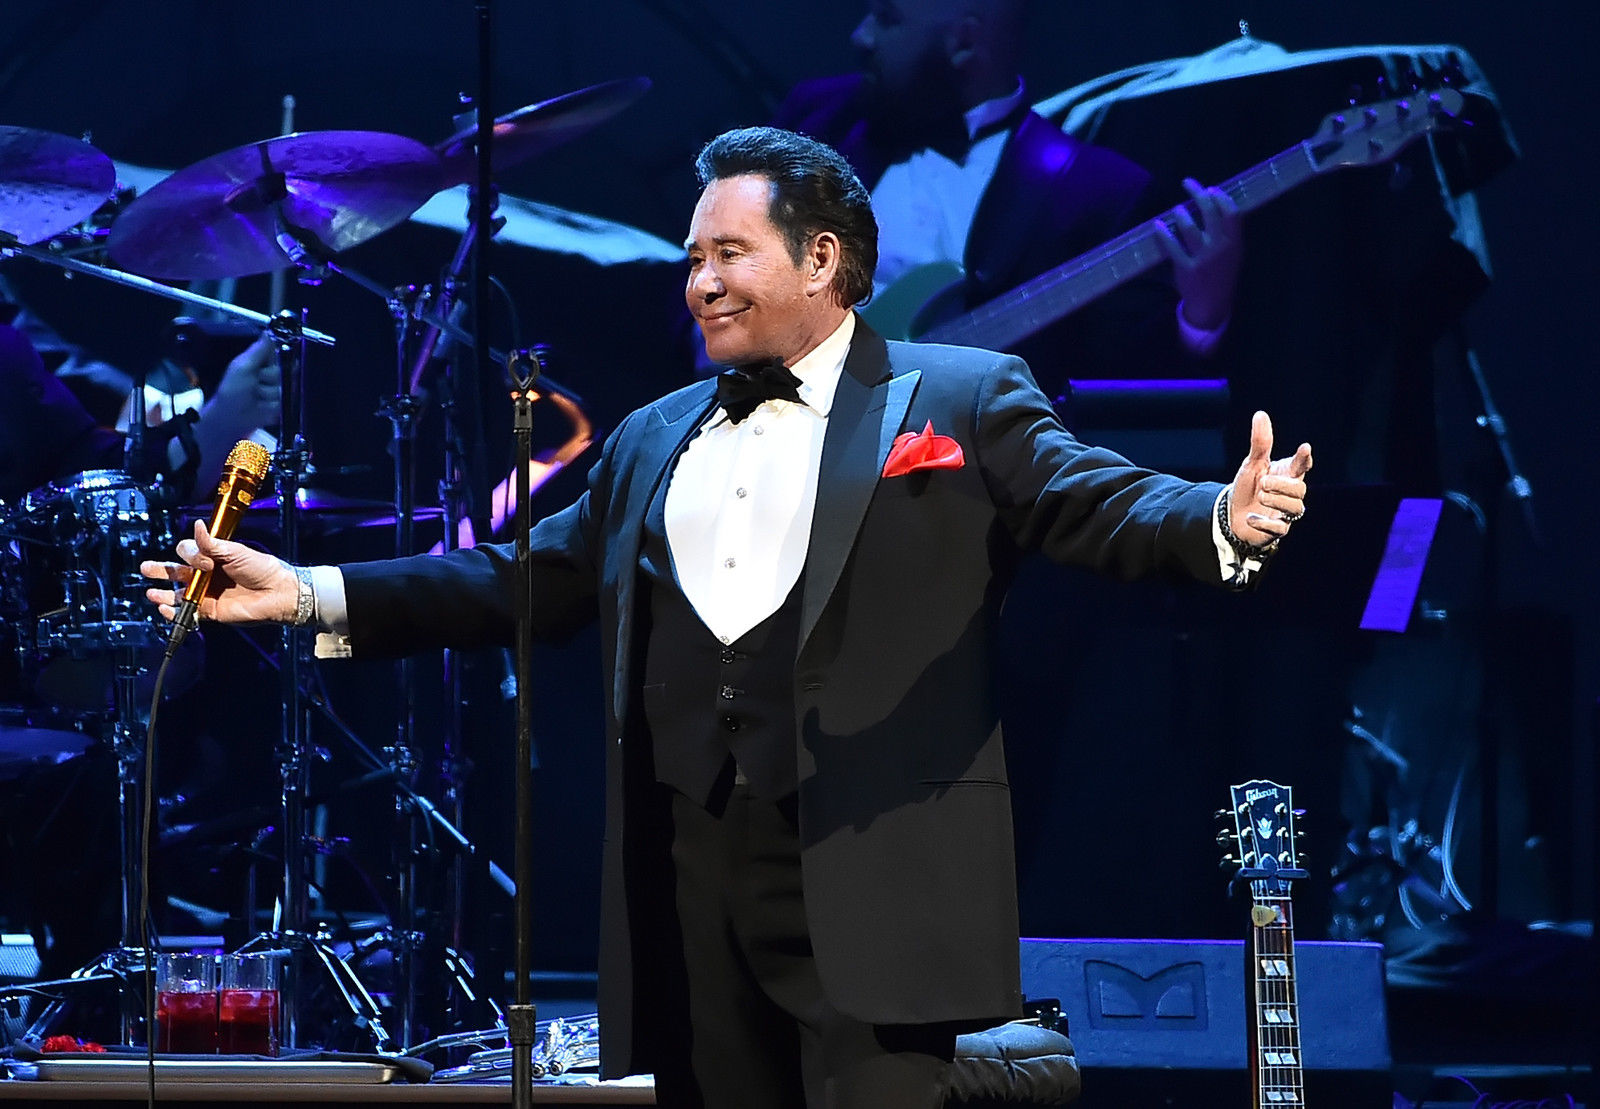 Saban Theatre Wayne Newton | Music News | Las Vegas Music